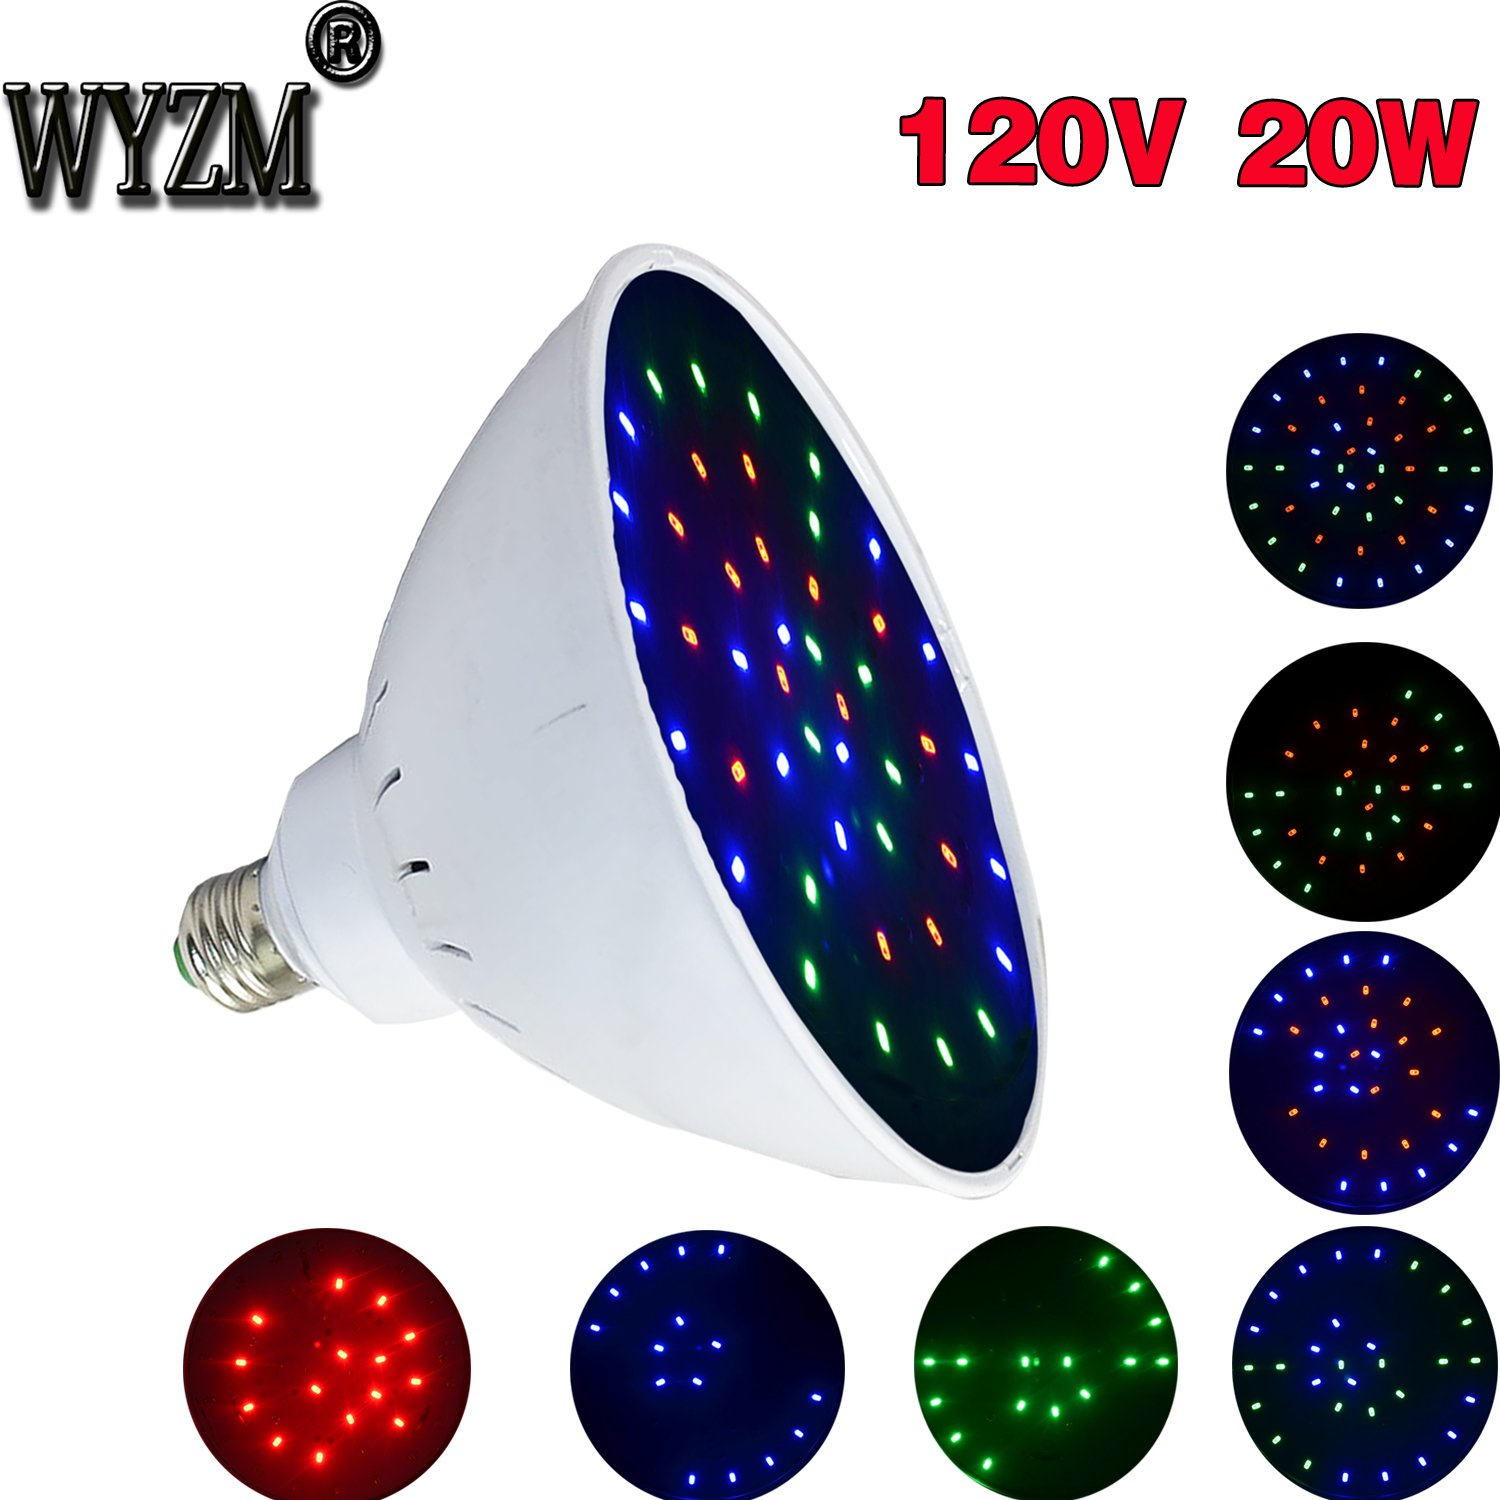 Replacement lights for inground pools - Amazon Com Wyzm 120v 20w Color Changing Swimming Pool Led Light Bulb Direct Replacement For Pentair Hayward Light Fixture 120v 20w Patio